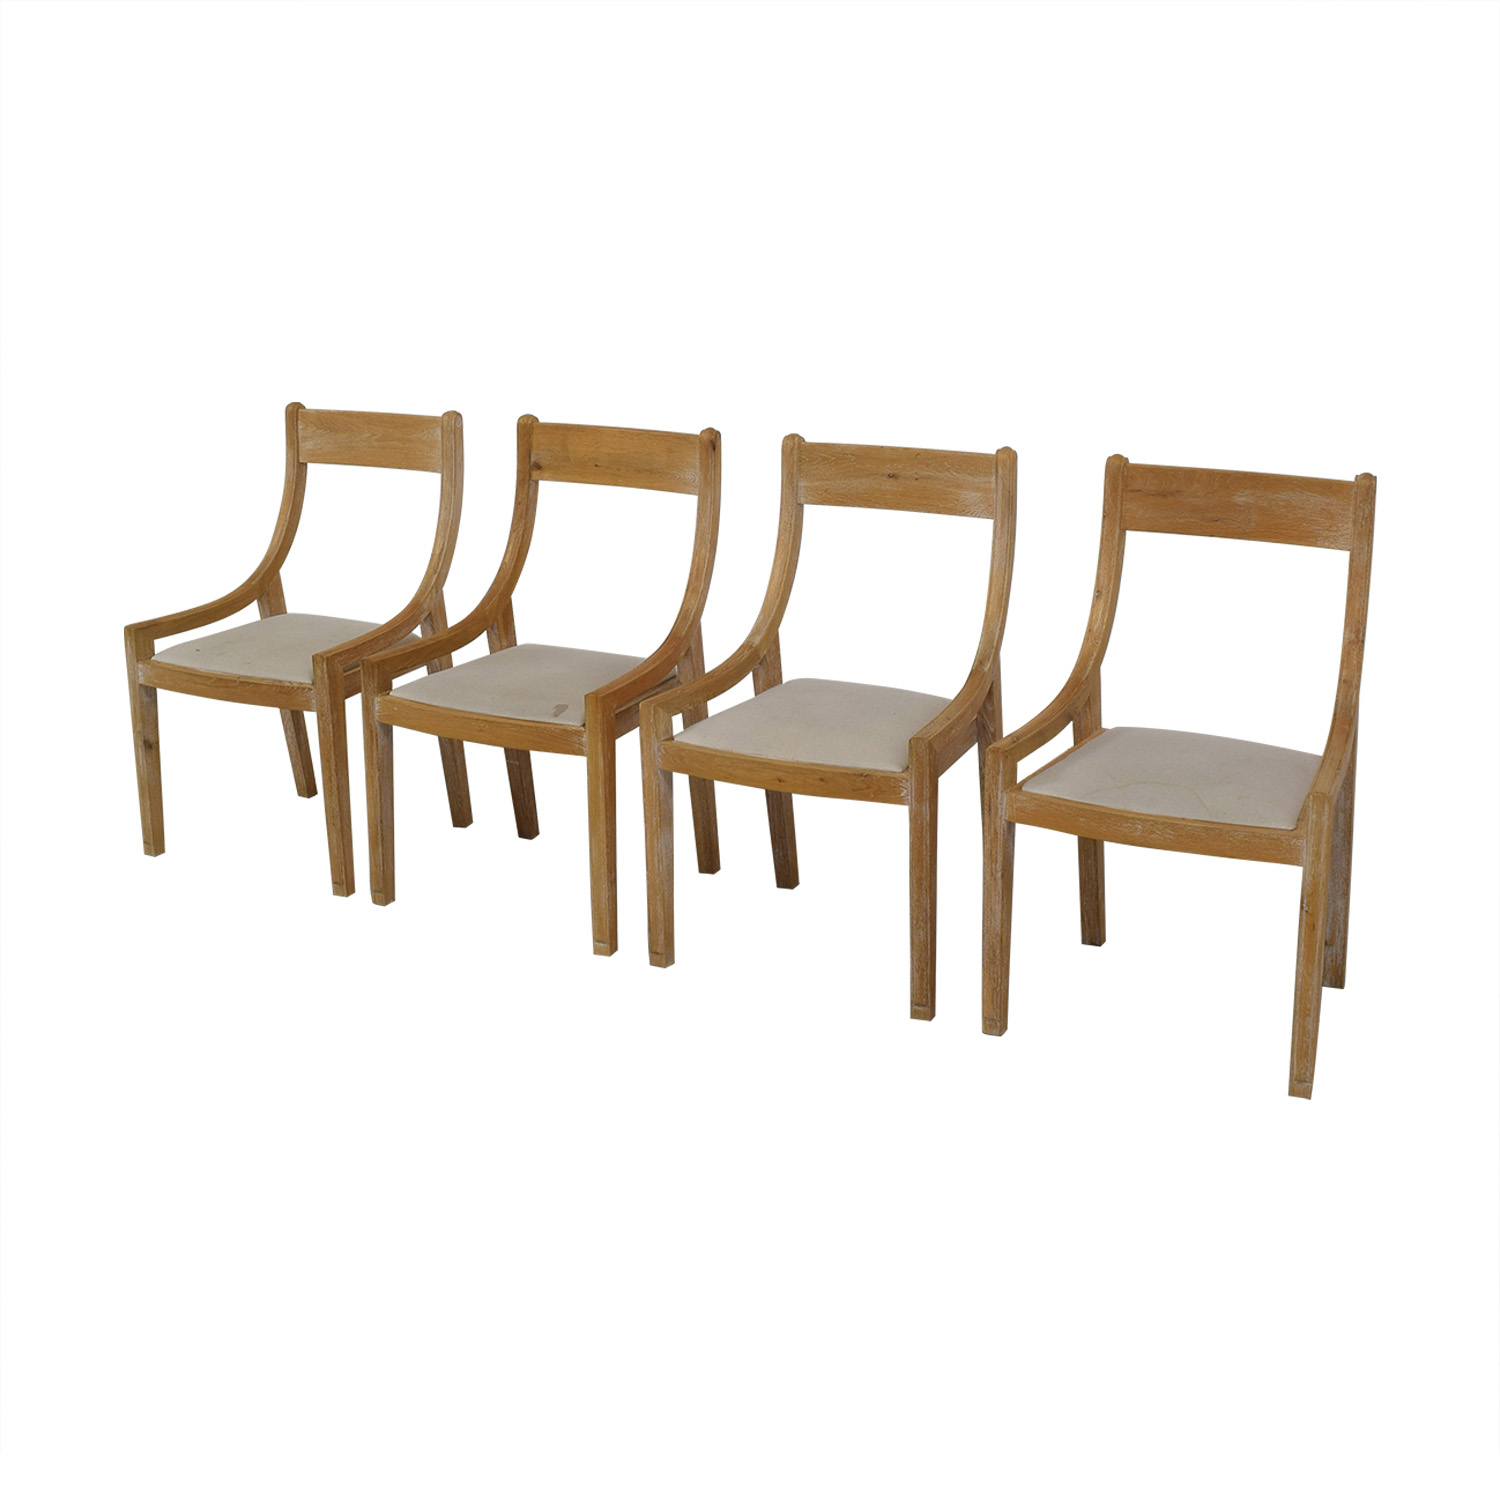 Birch Lane Birch Lane Solid Wood Dining Chairs Chairs